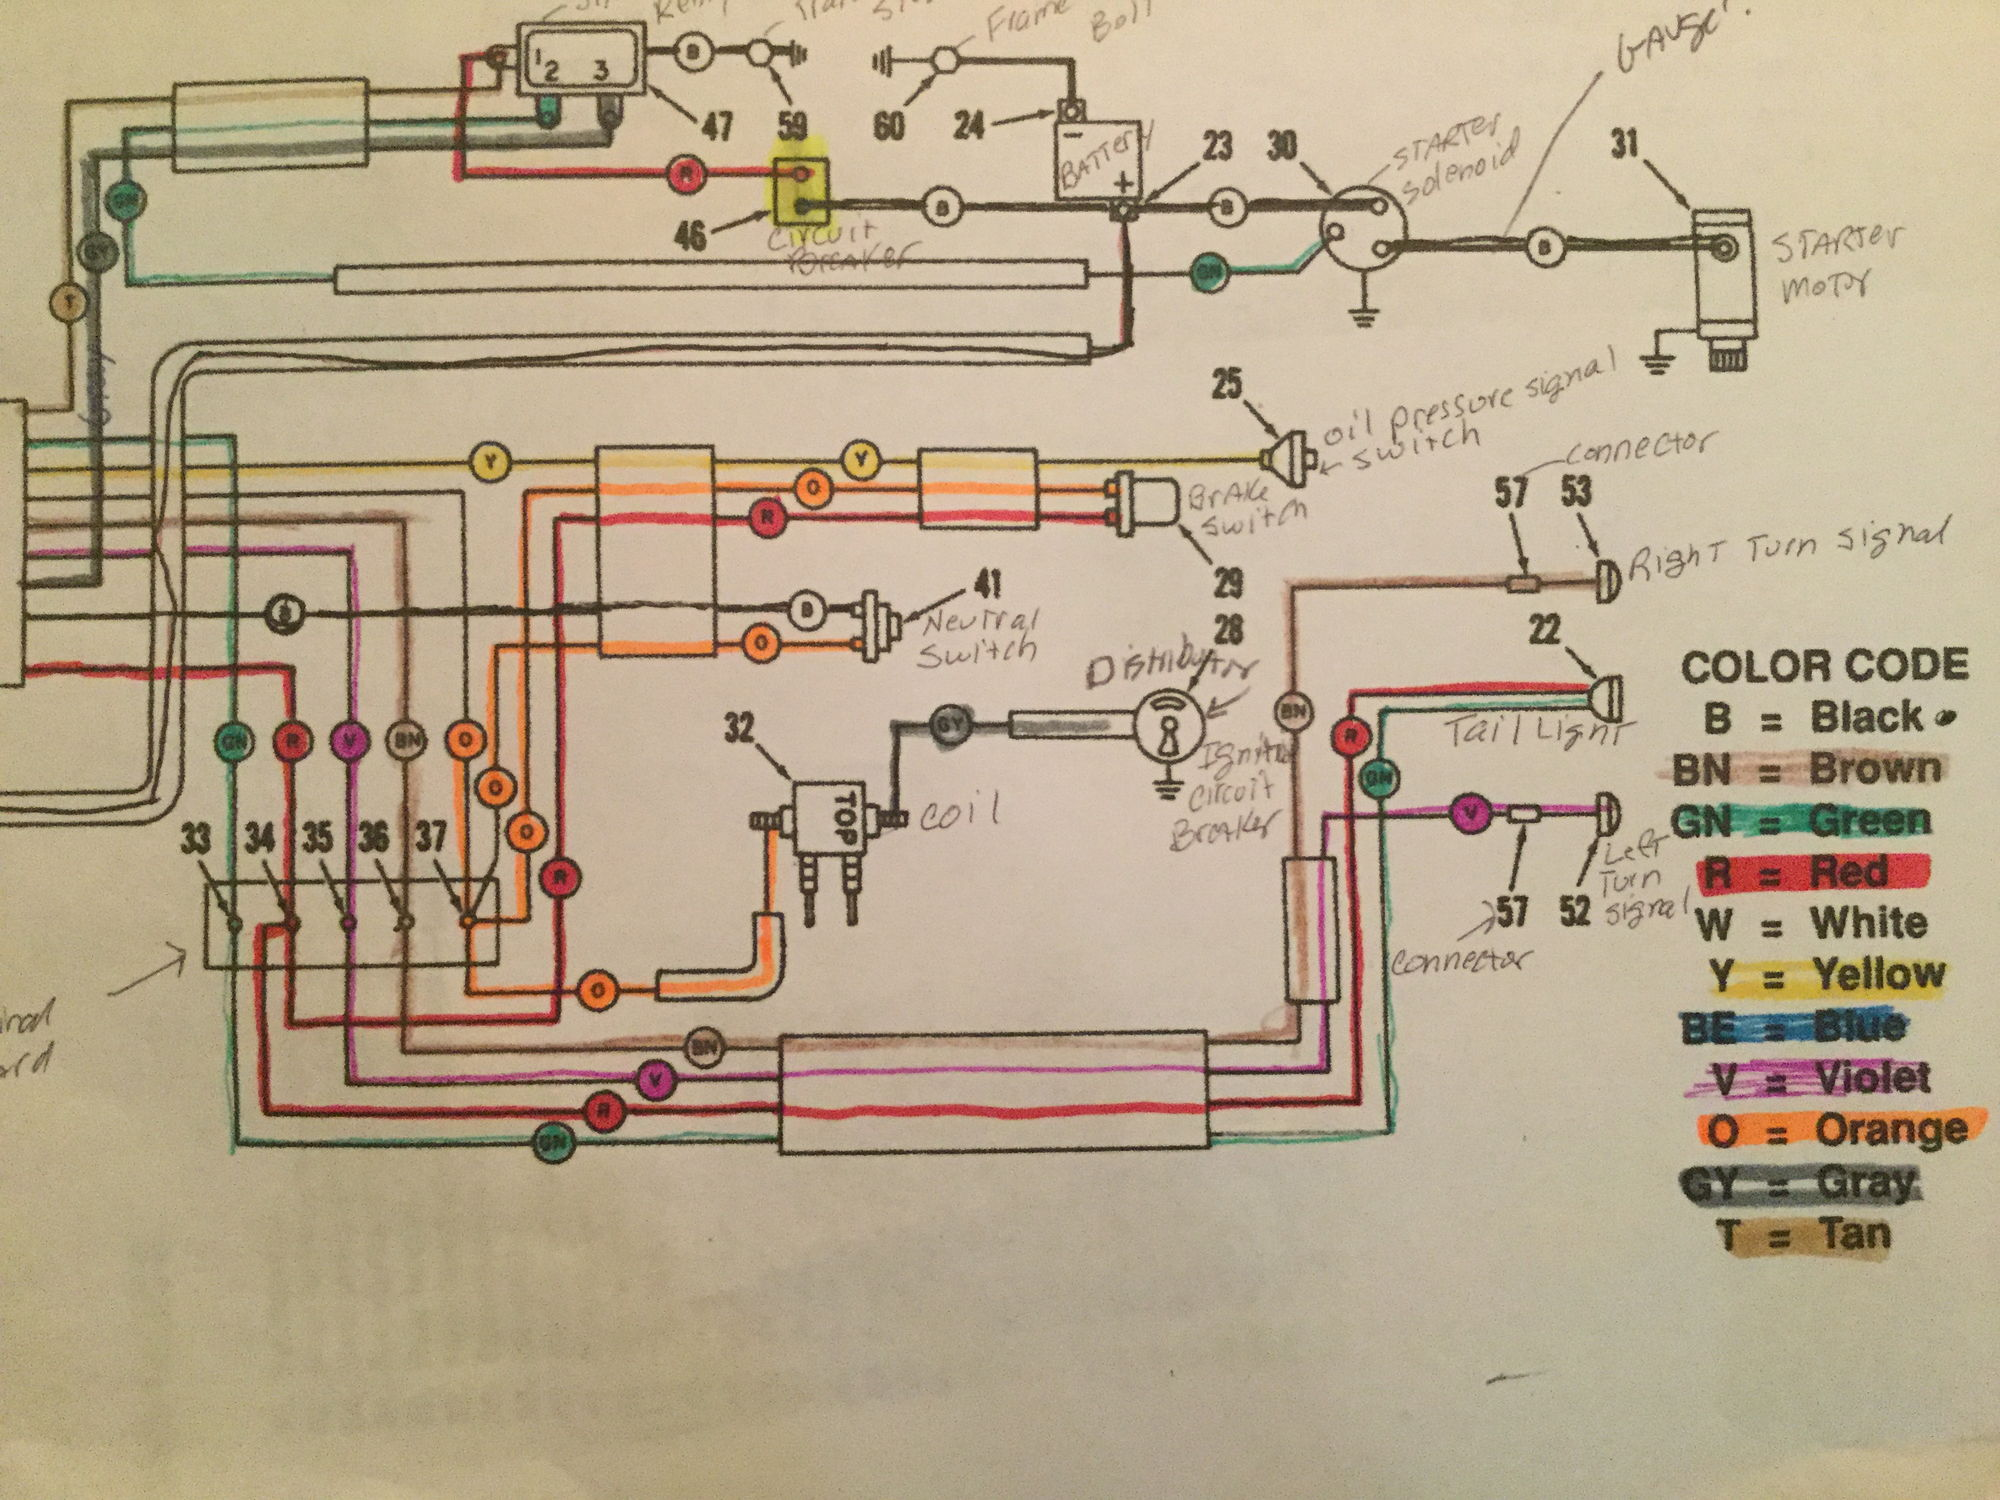 hight resolution of flh dash wiring diagram another blog about wiring diagram u2022 rh ok2 infoservice ru 1980 harley